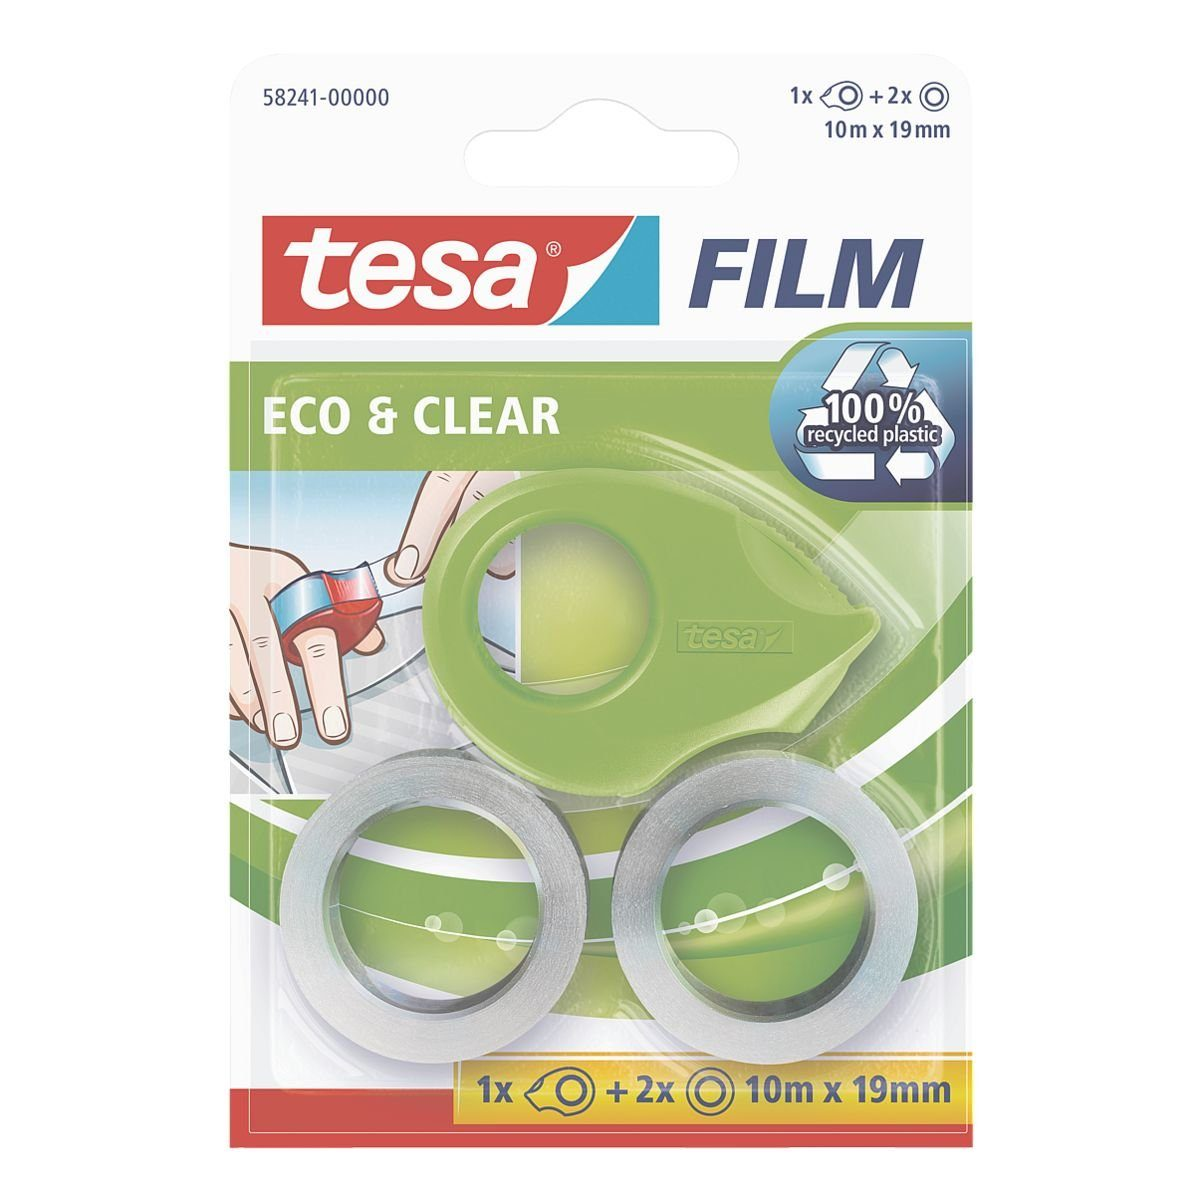 Tesa 2er-Set Klebeband mit Mini-Abroller »eco & clear«